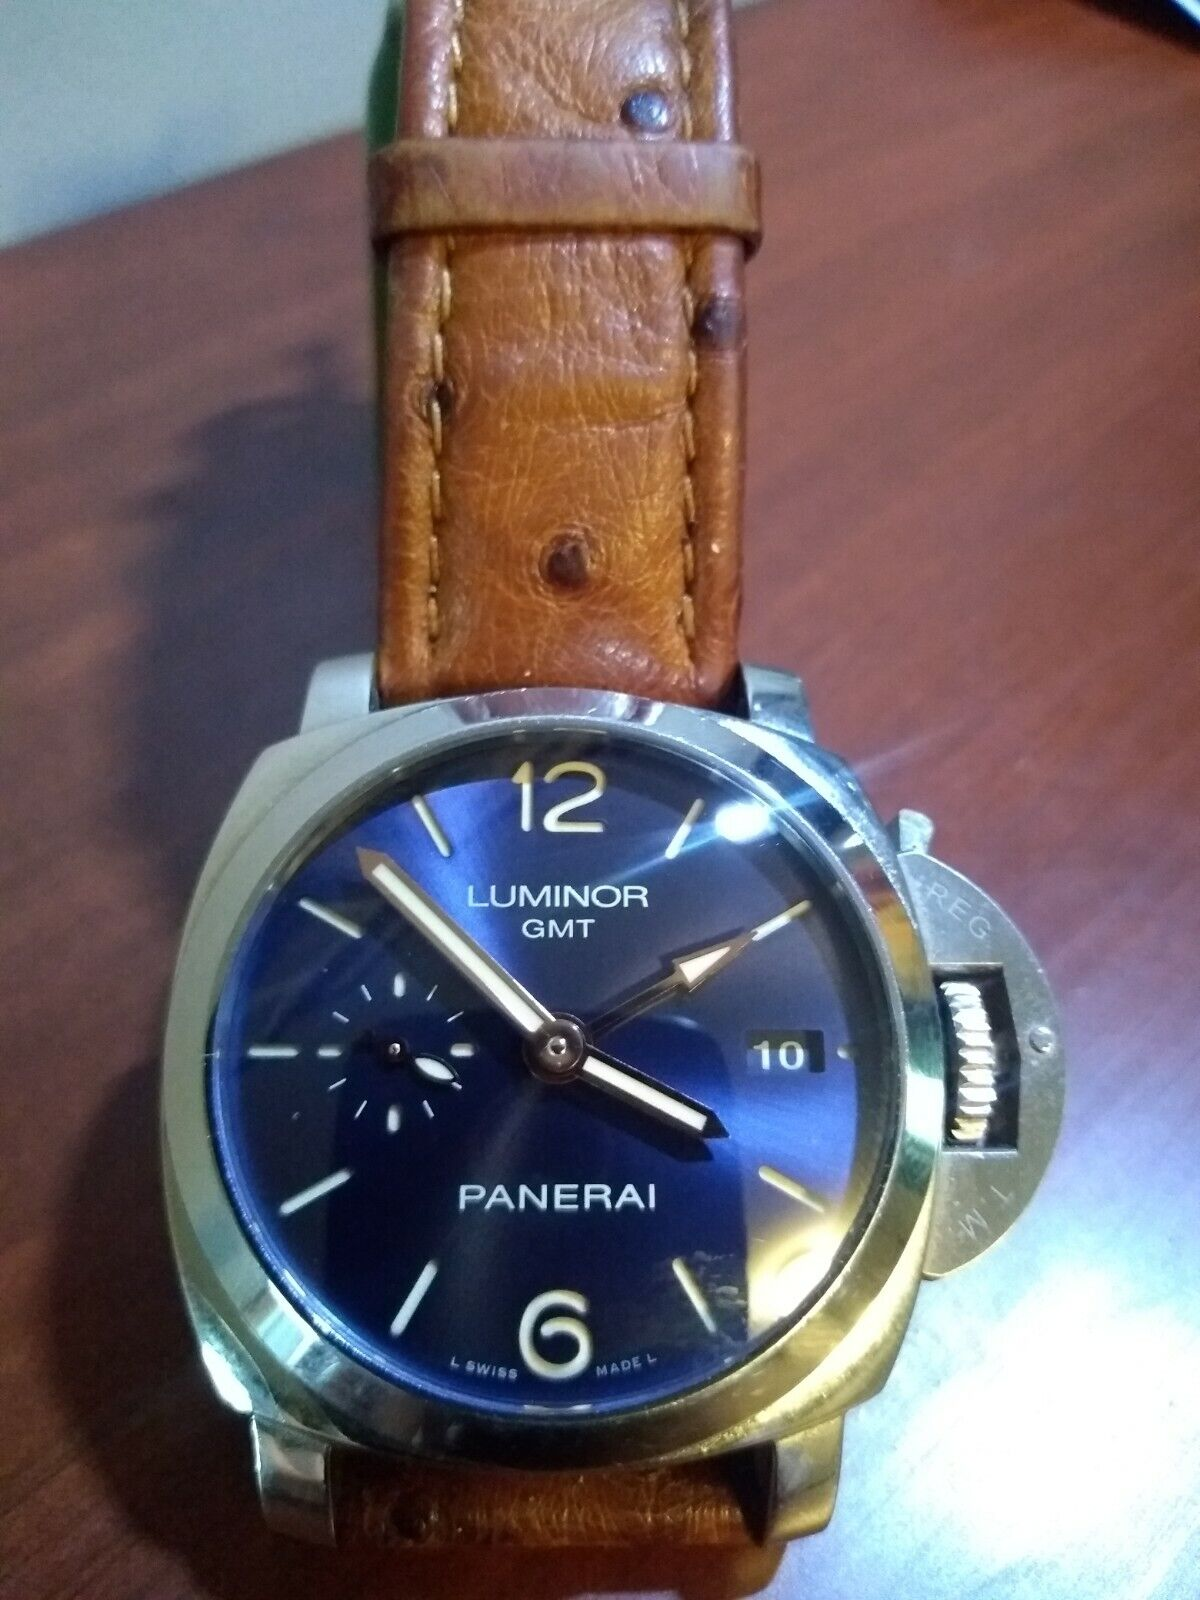 Panerai Luminor GMT Blue Dial / Tan Band – Estate Sale Find / ***No Reserve!*** - watch picture 1